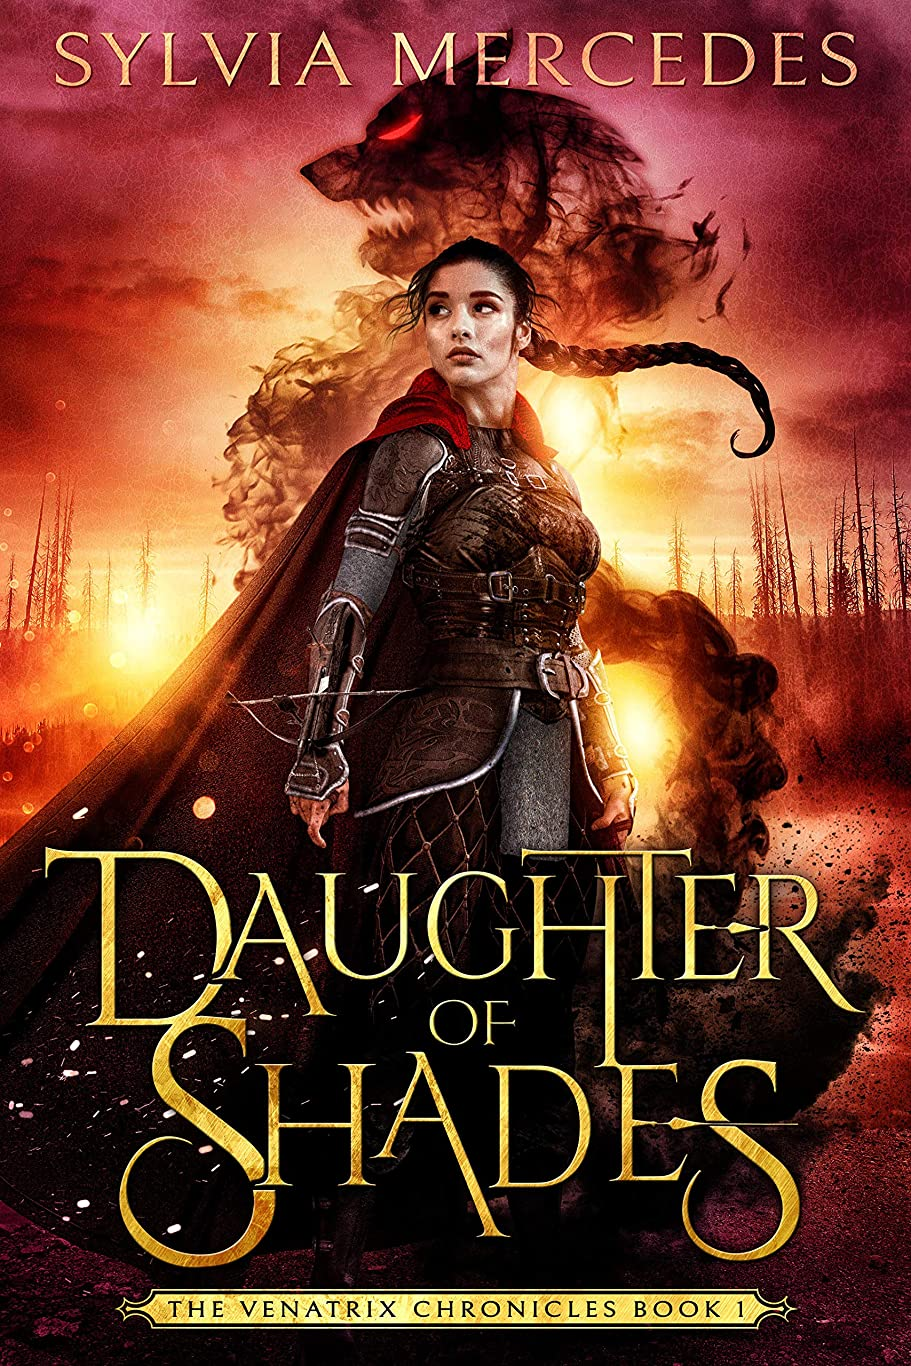 情熱的ハンバーガー販売員Daughter of Shades (The Venatrix Chronicles Book 1) (English Edition)